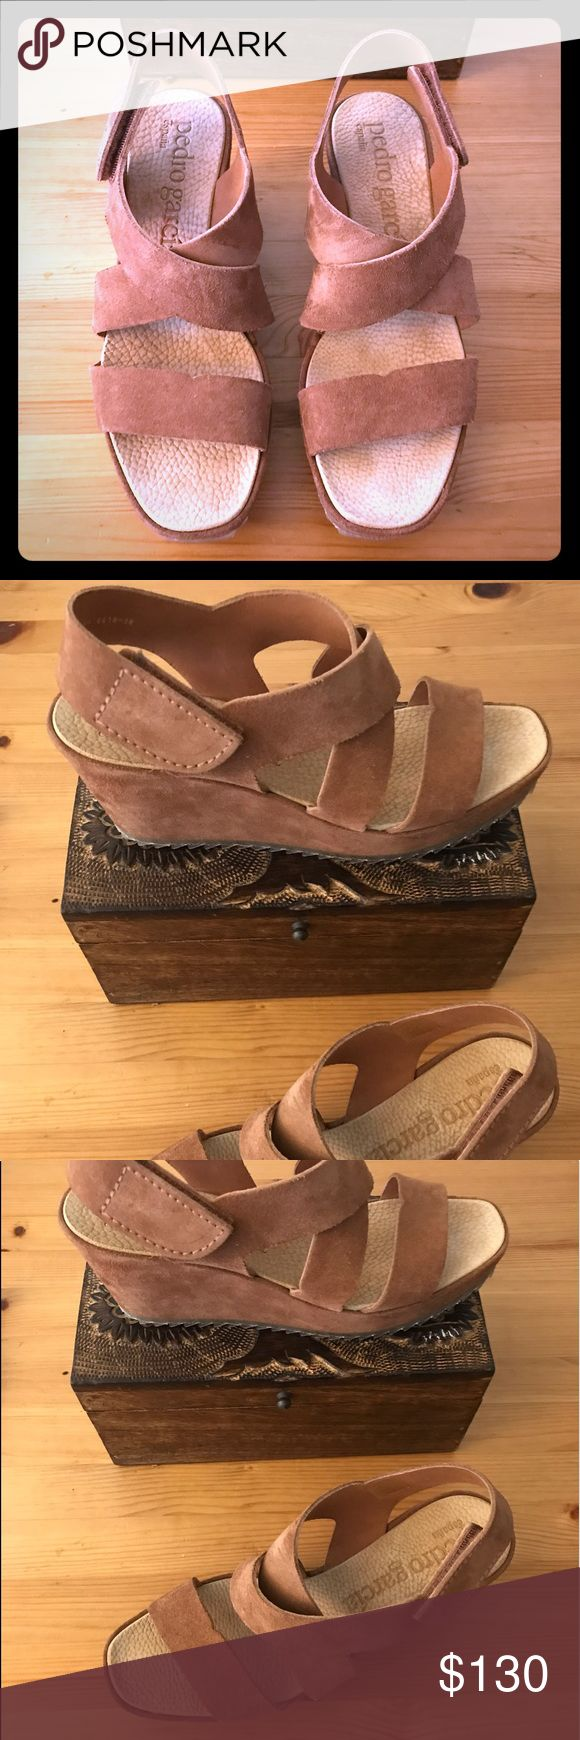 Gorgeous Pedro Garcia Wedges Beautiful brown wedges in brow suade! These sandals are super nice and comfortable.  Reasonable offers welcome! Pedro Garcia Shoes Wedges